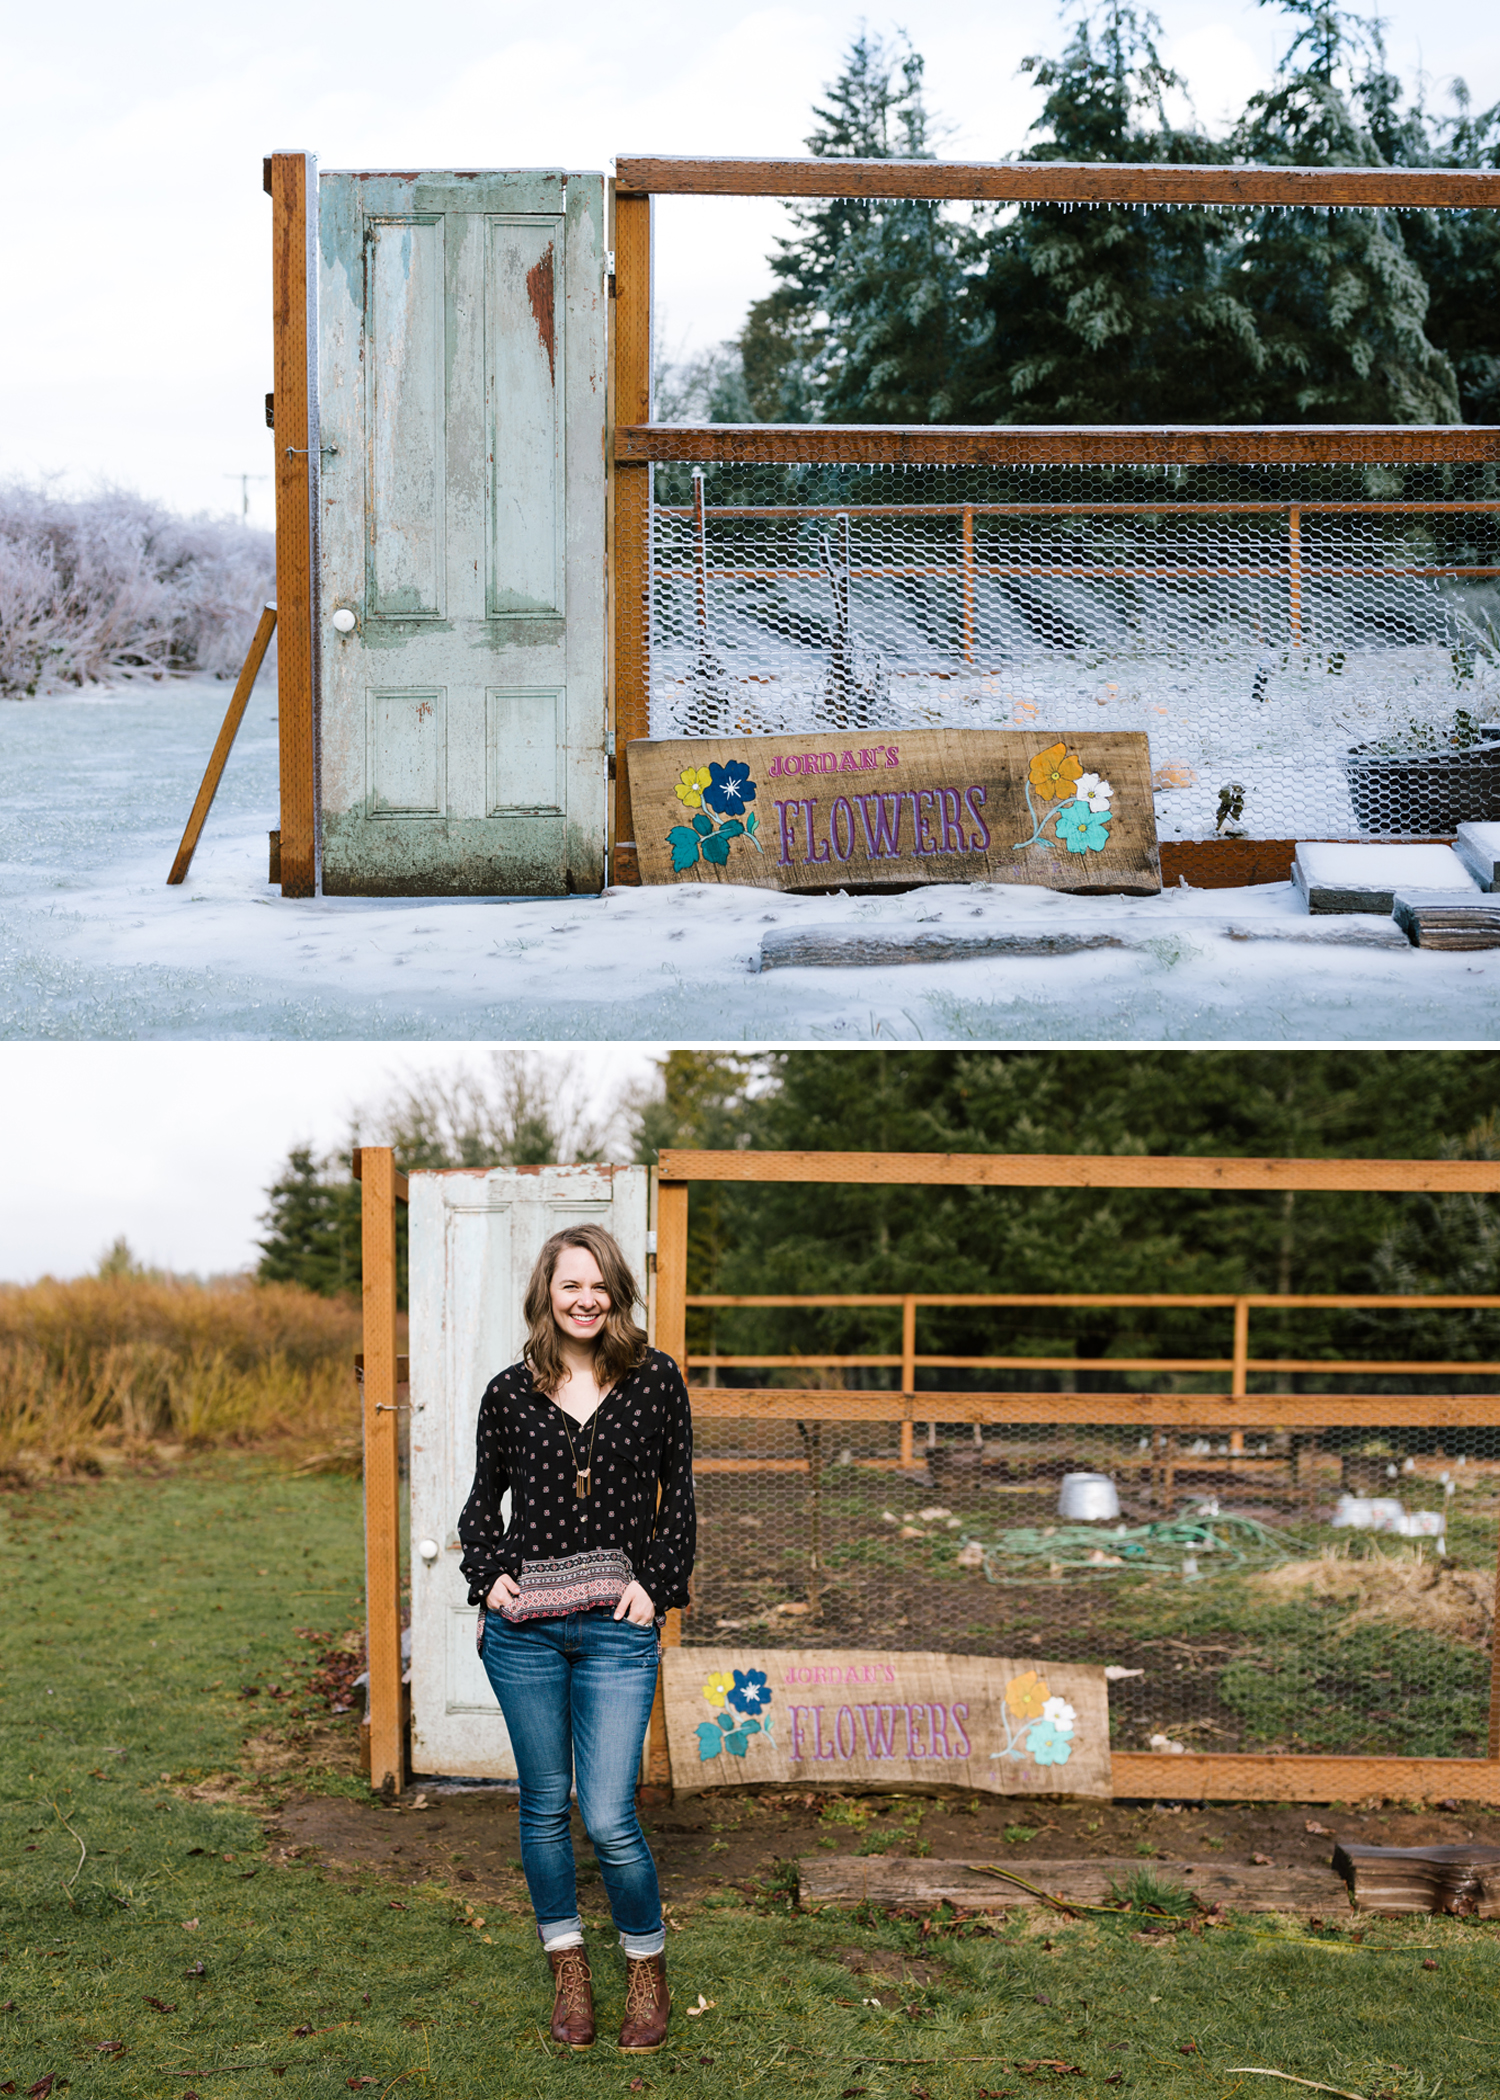 The last time I visited the farm, everything was just encased in a sheet of very thick ice. Jordan has been working hard to get her garden ready for spring and summer, and I cannot wait to see what she's able to harvest this year.